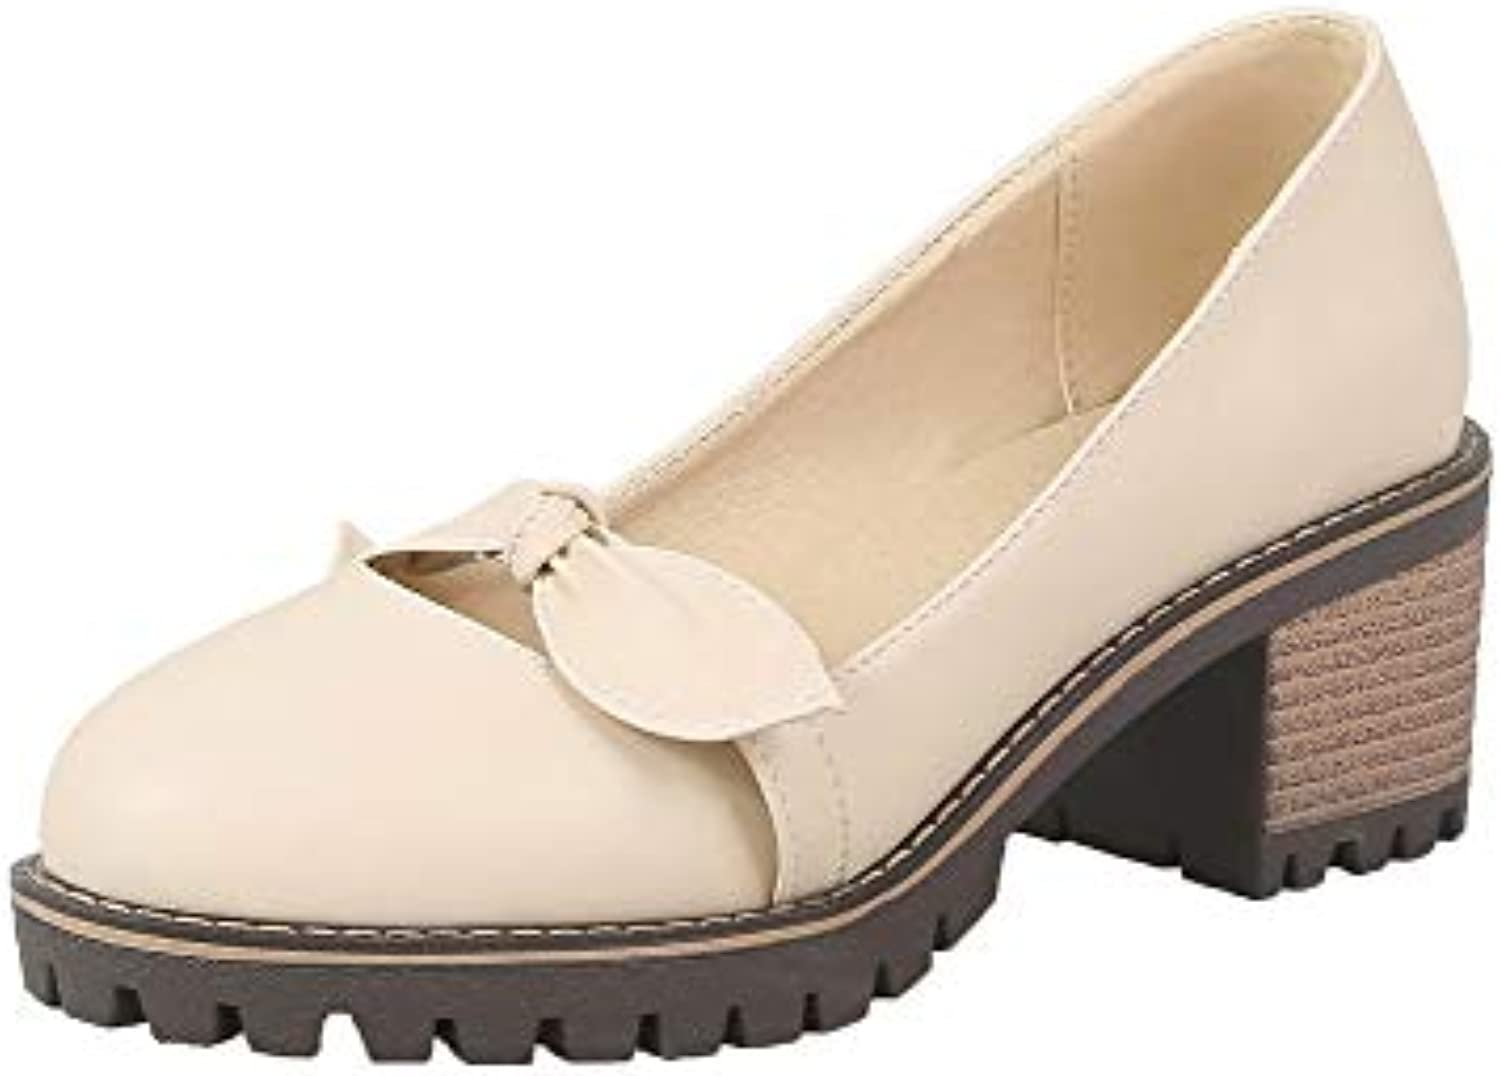 e4ba37cb8663 AalarDom Women s Women s Women s PU Pull-On Round Closed Toe Solid Pumps- Shoes